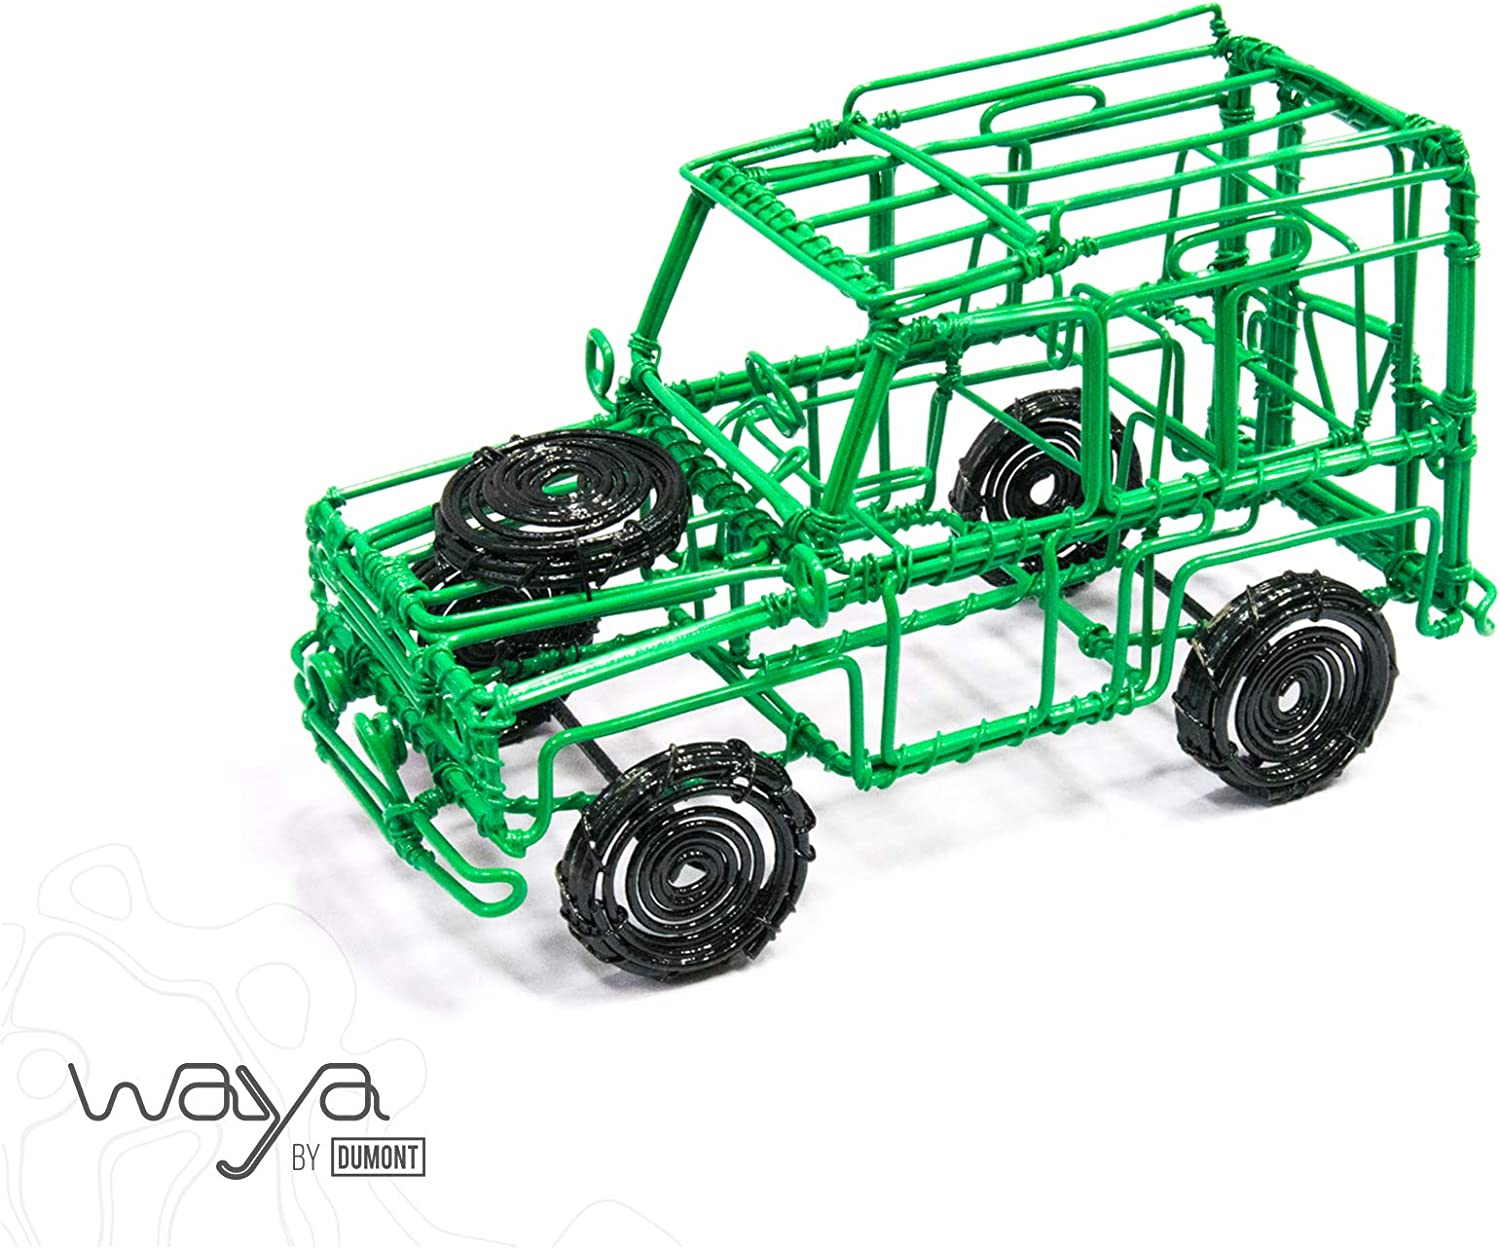 Waya For Africa Mojo Hand Crafted Recycled Wire Landy Made in Kenya.